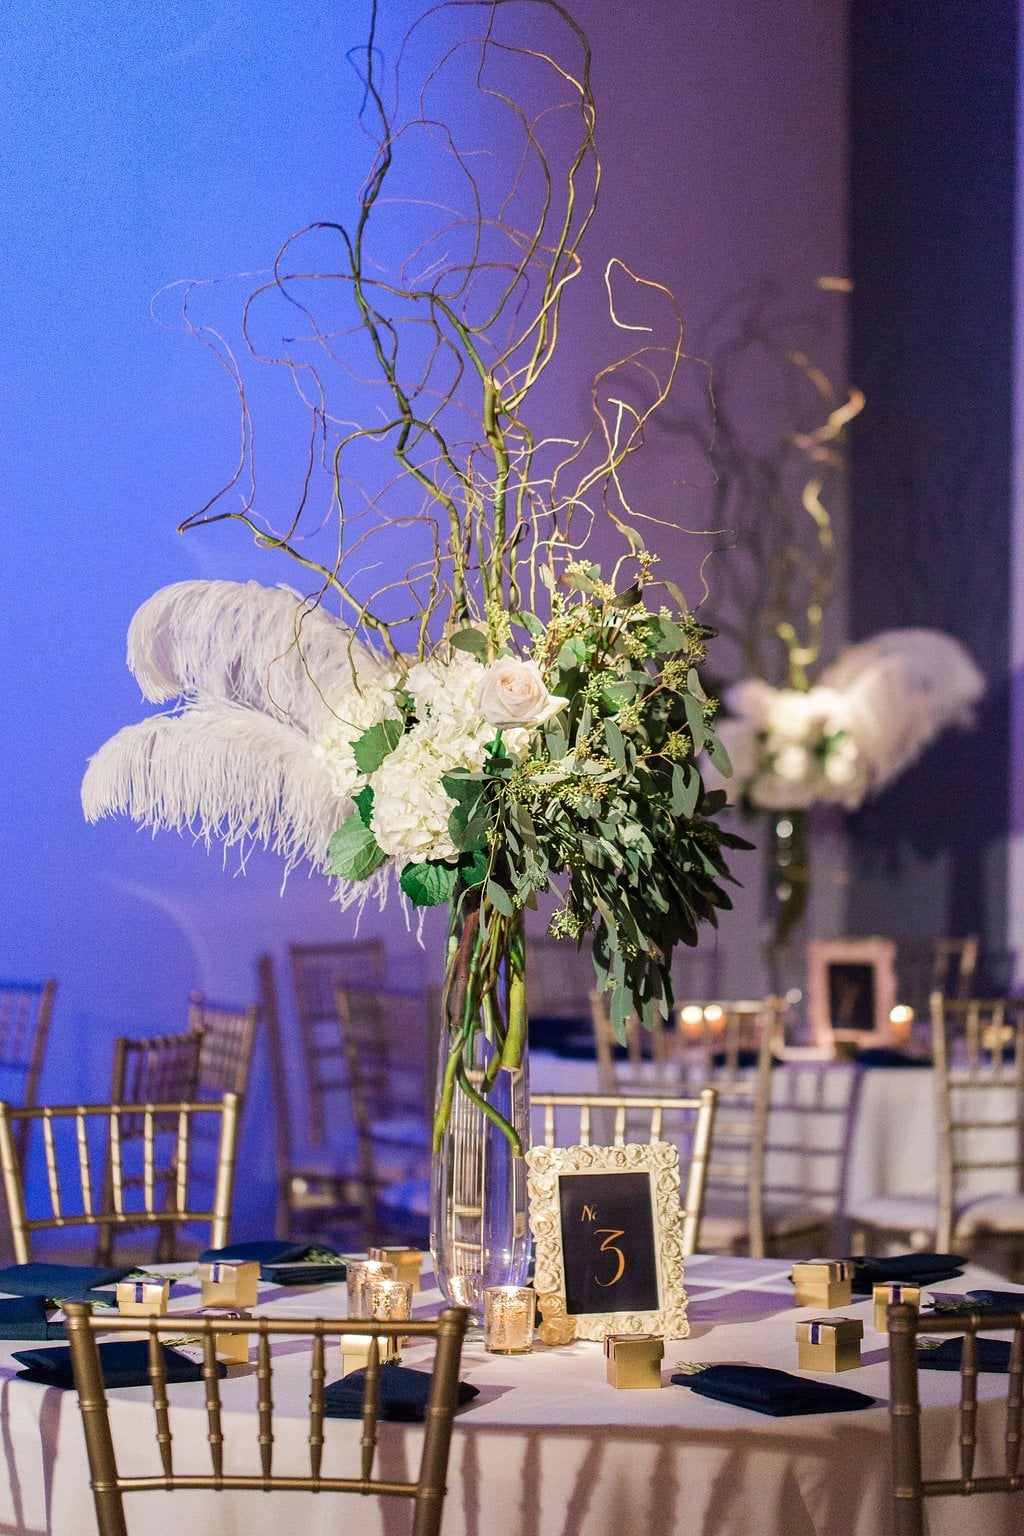 Tall floral centerpieces with white feathers and flowers at winter wedding reception